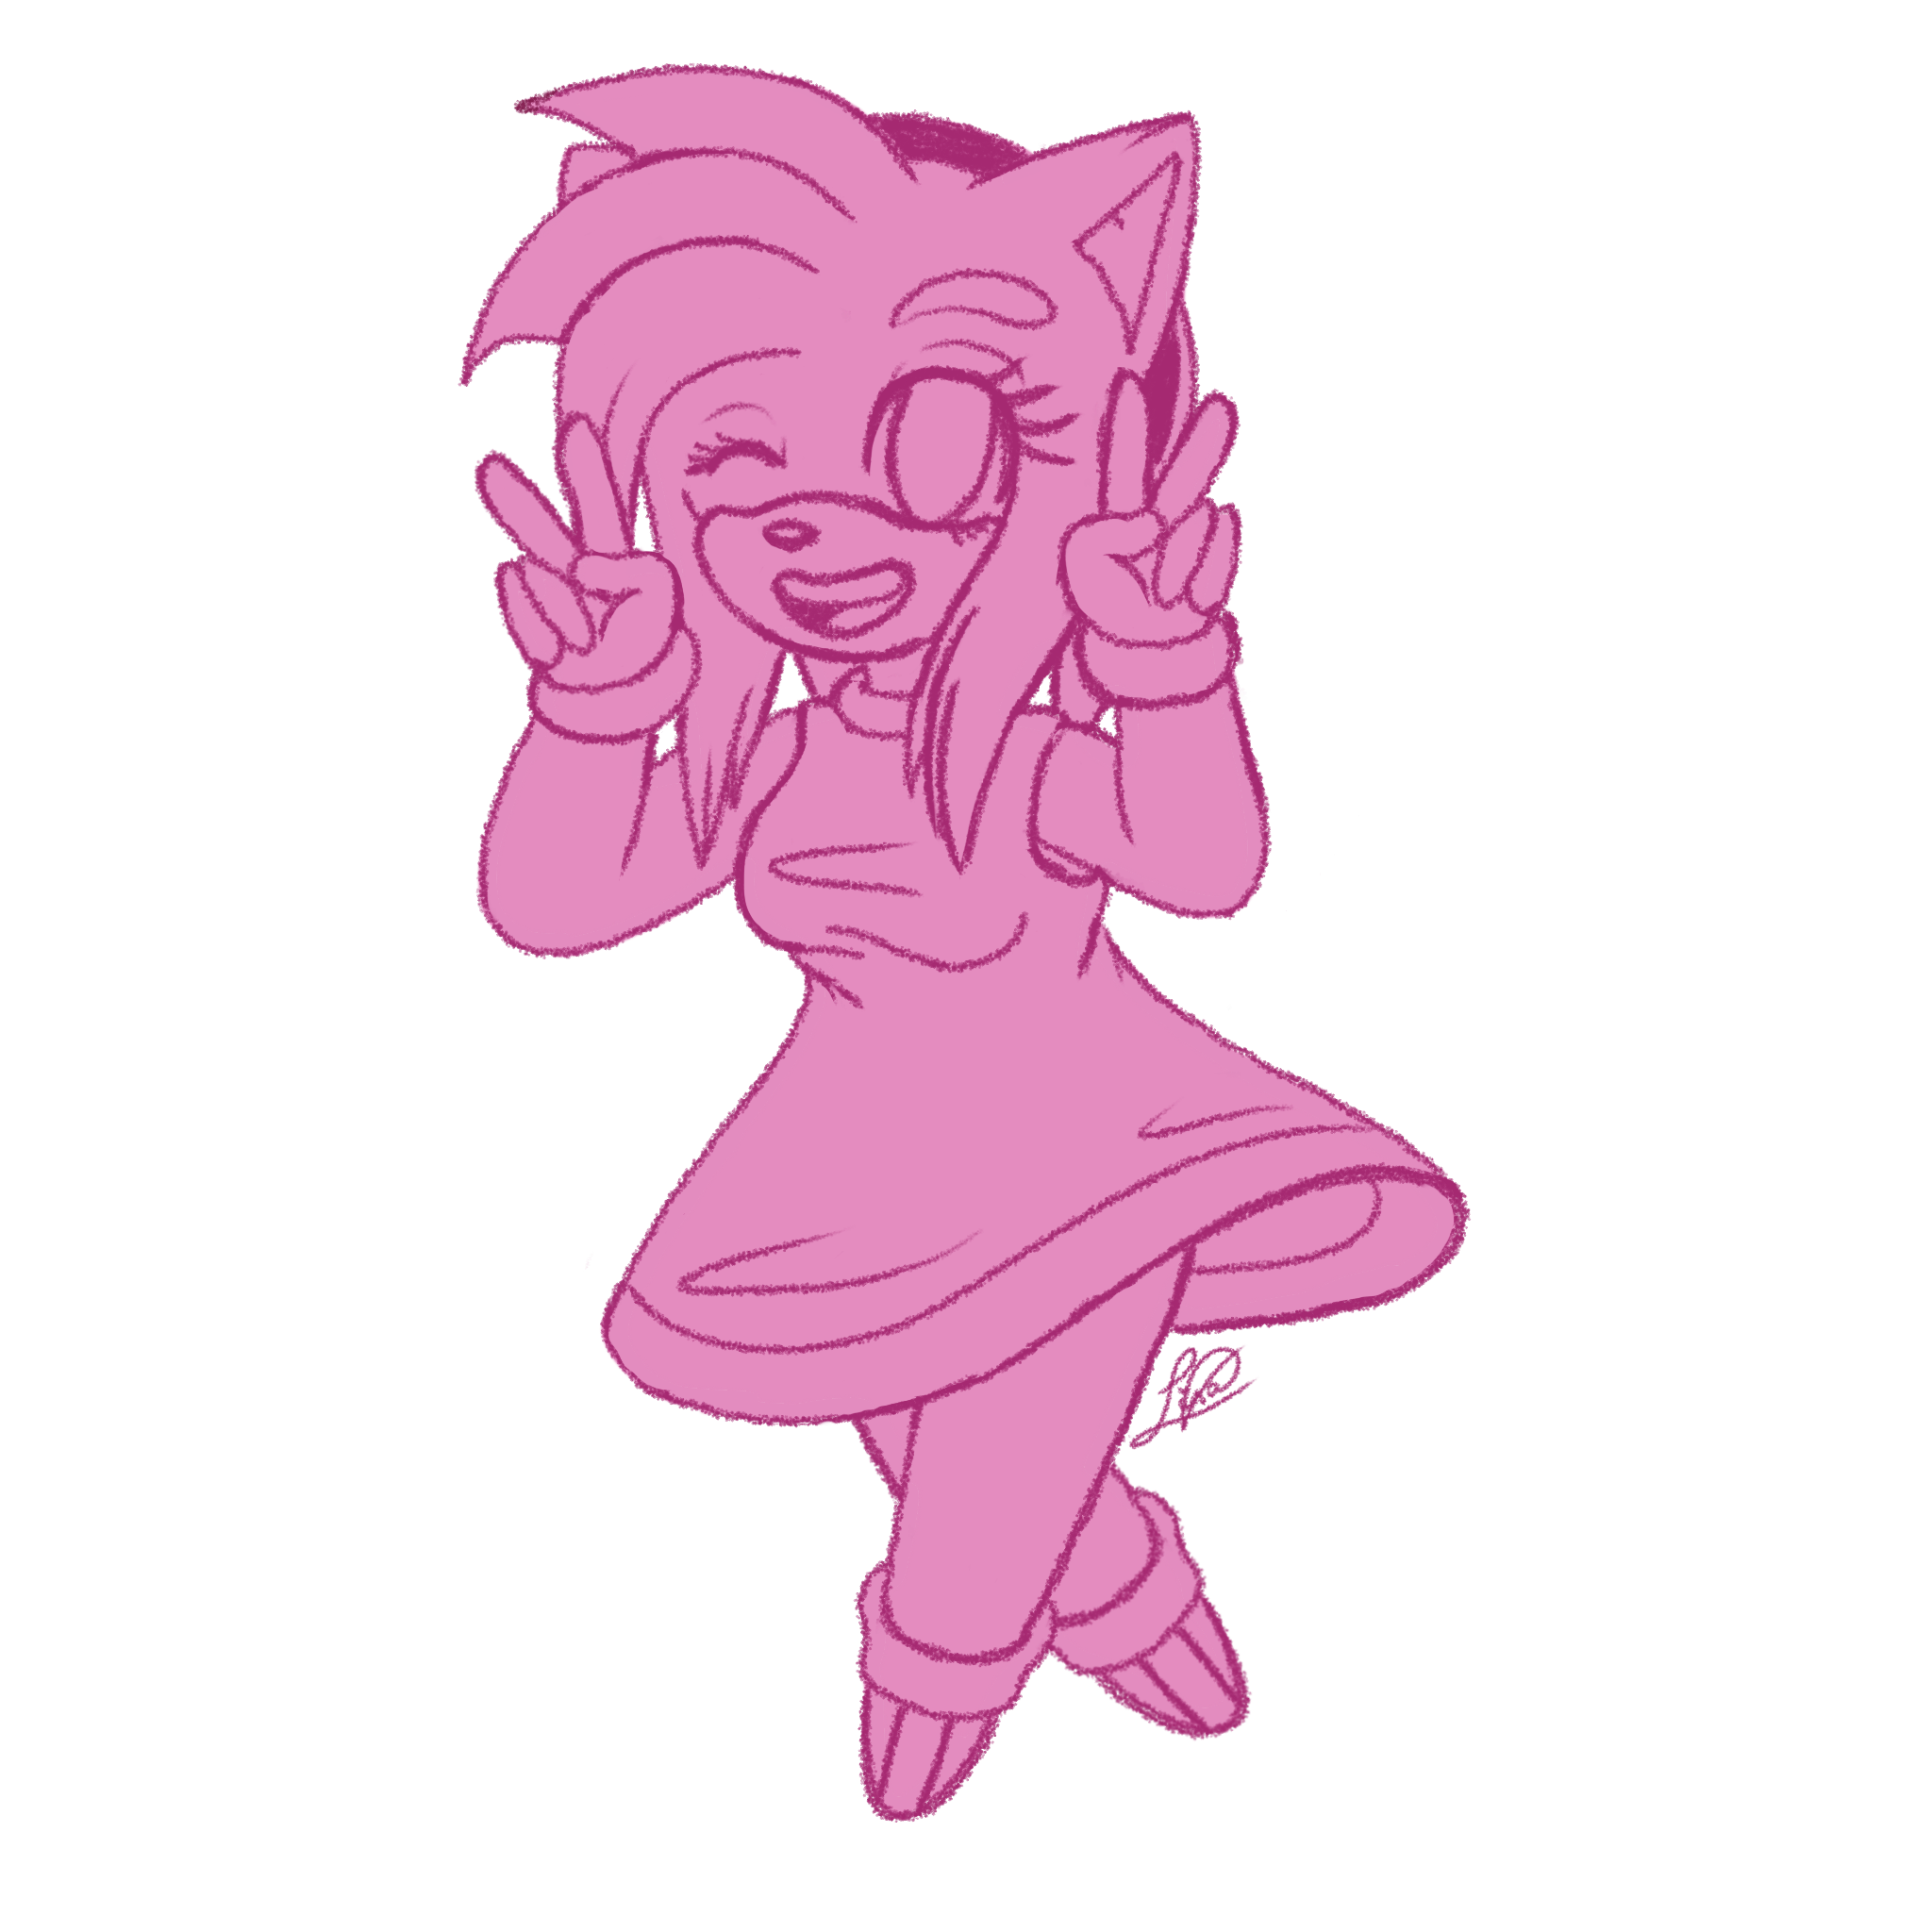 Ko Fi Sketches 1 Amy Rose By Kathy The Echidna On Deviantart